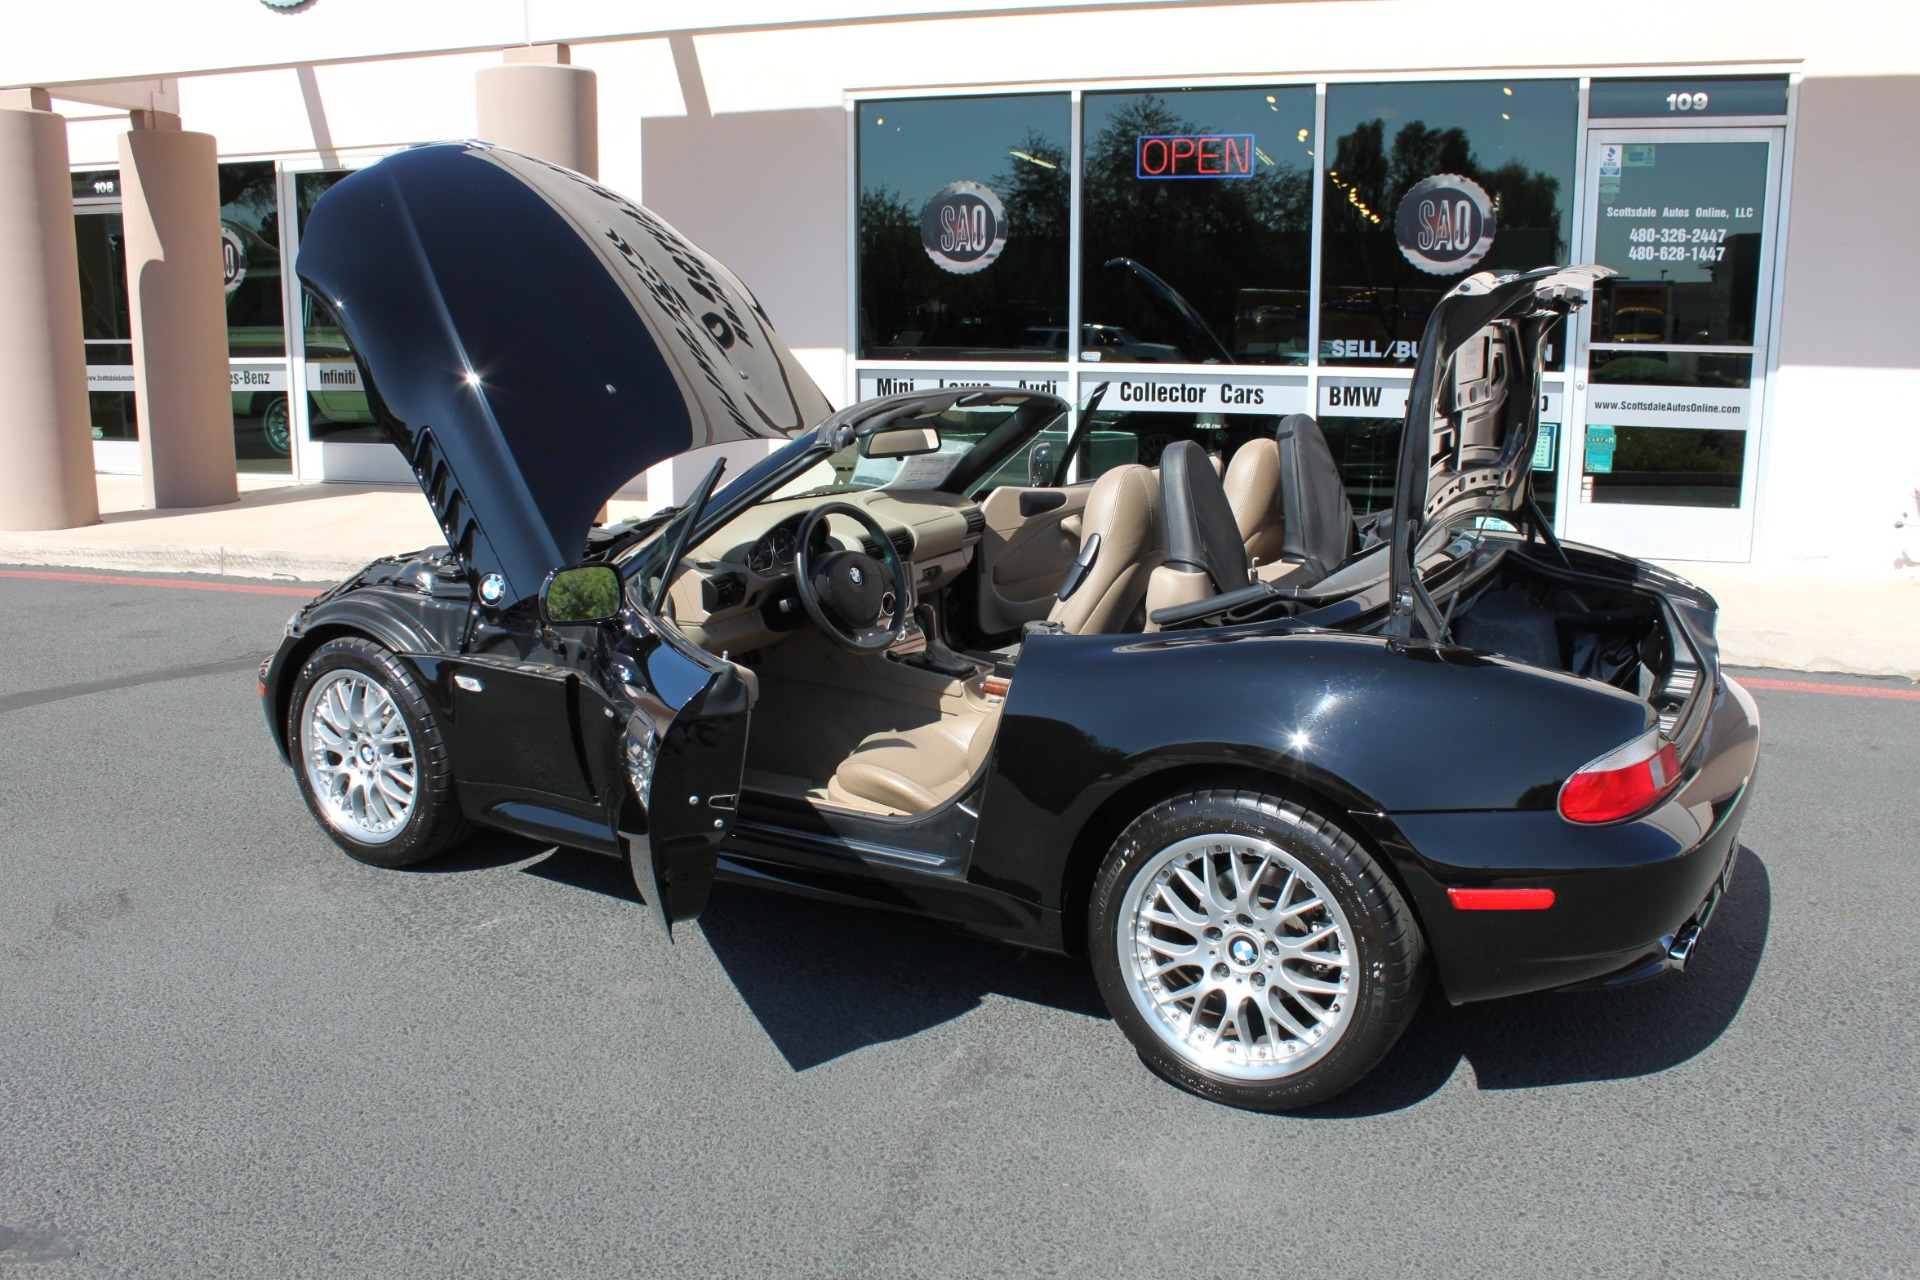 Used-2001-BMW-Z3-Roadster-30i-New-cars-for-sale-Gurnee